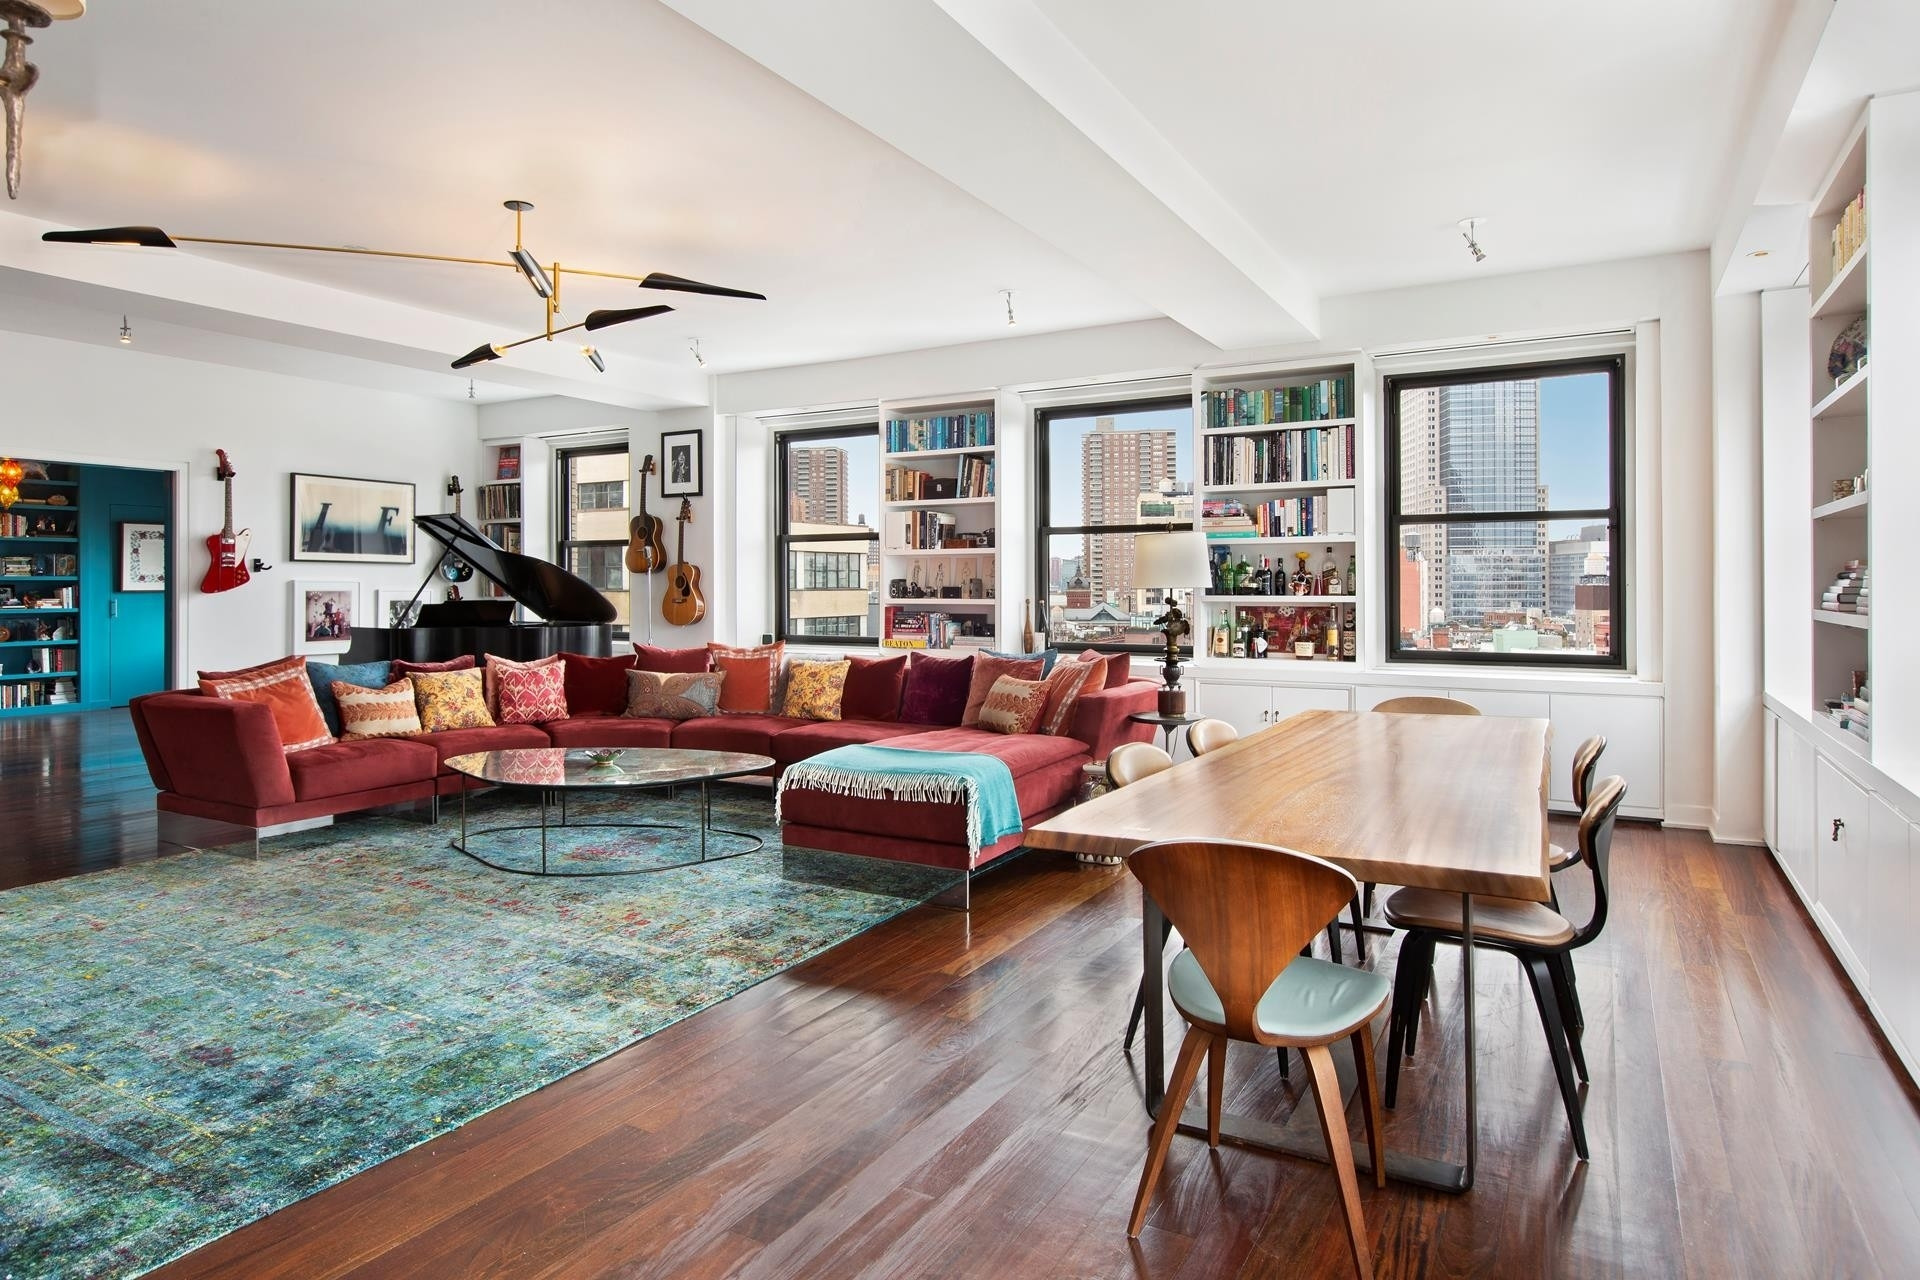 Condominium for Sale at THE FRANKLIN TOWER, 90 FRANKLIN ST , 11THFLOOR TriBeCa, New York, NY 10013